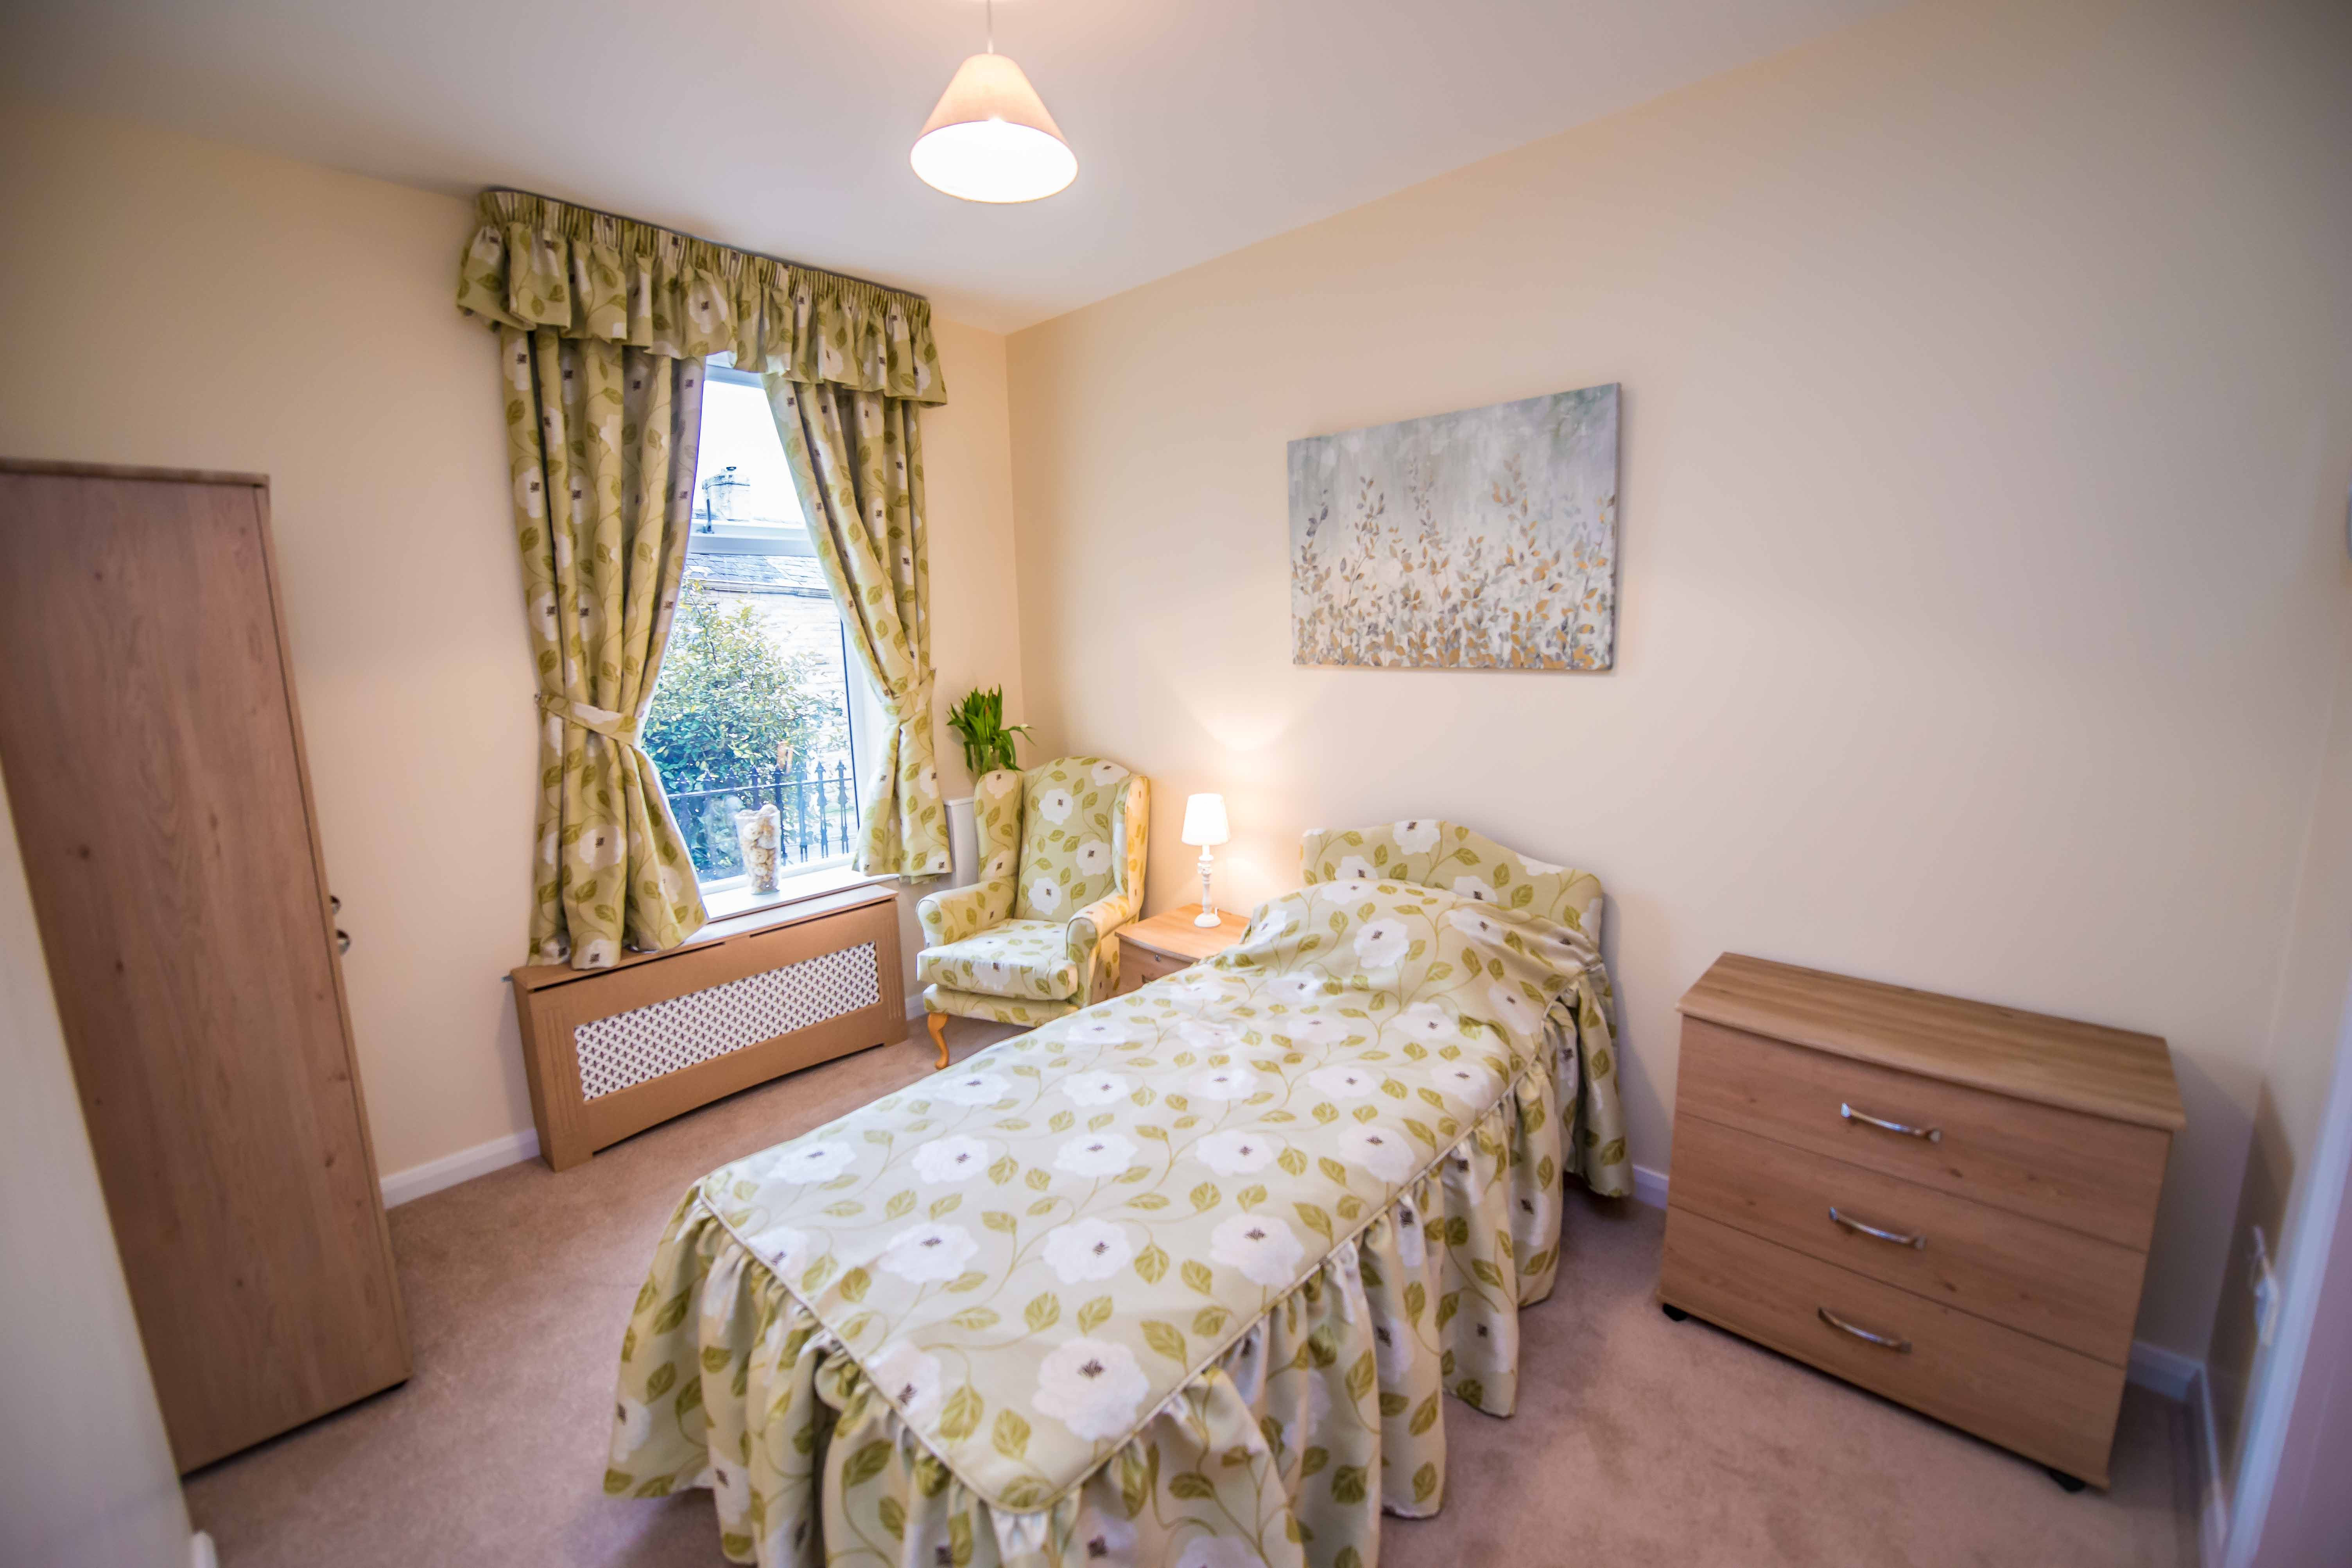 Townfield-rooms-8